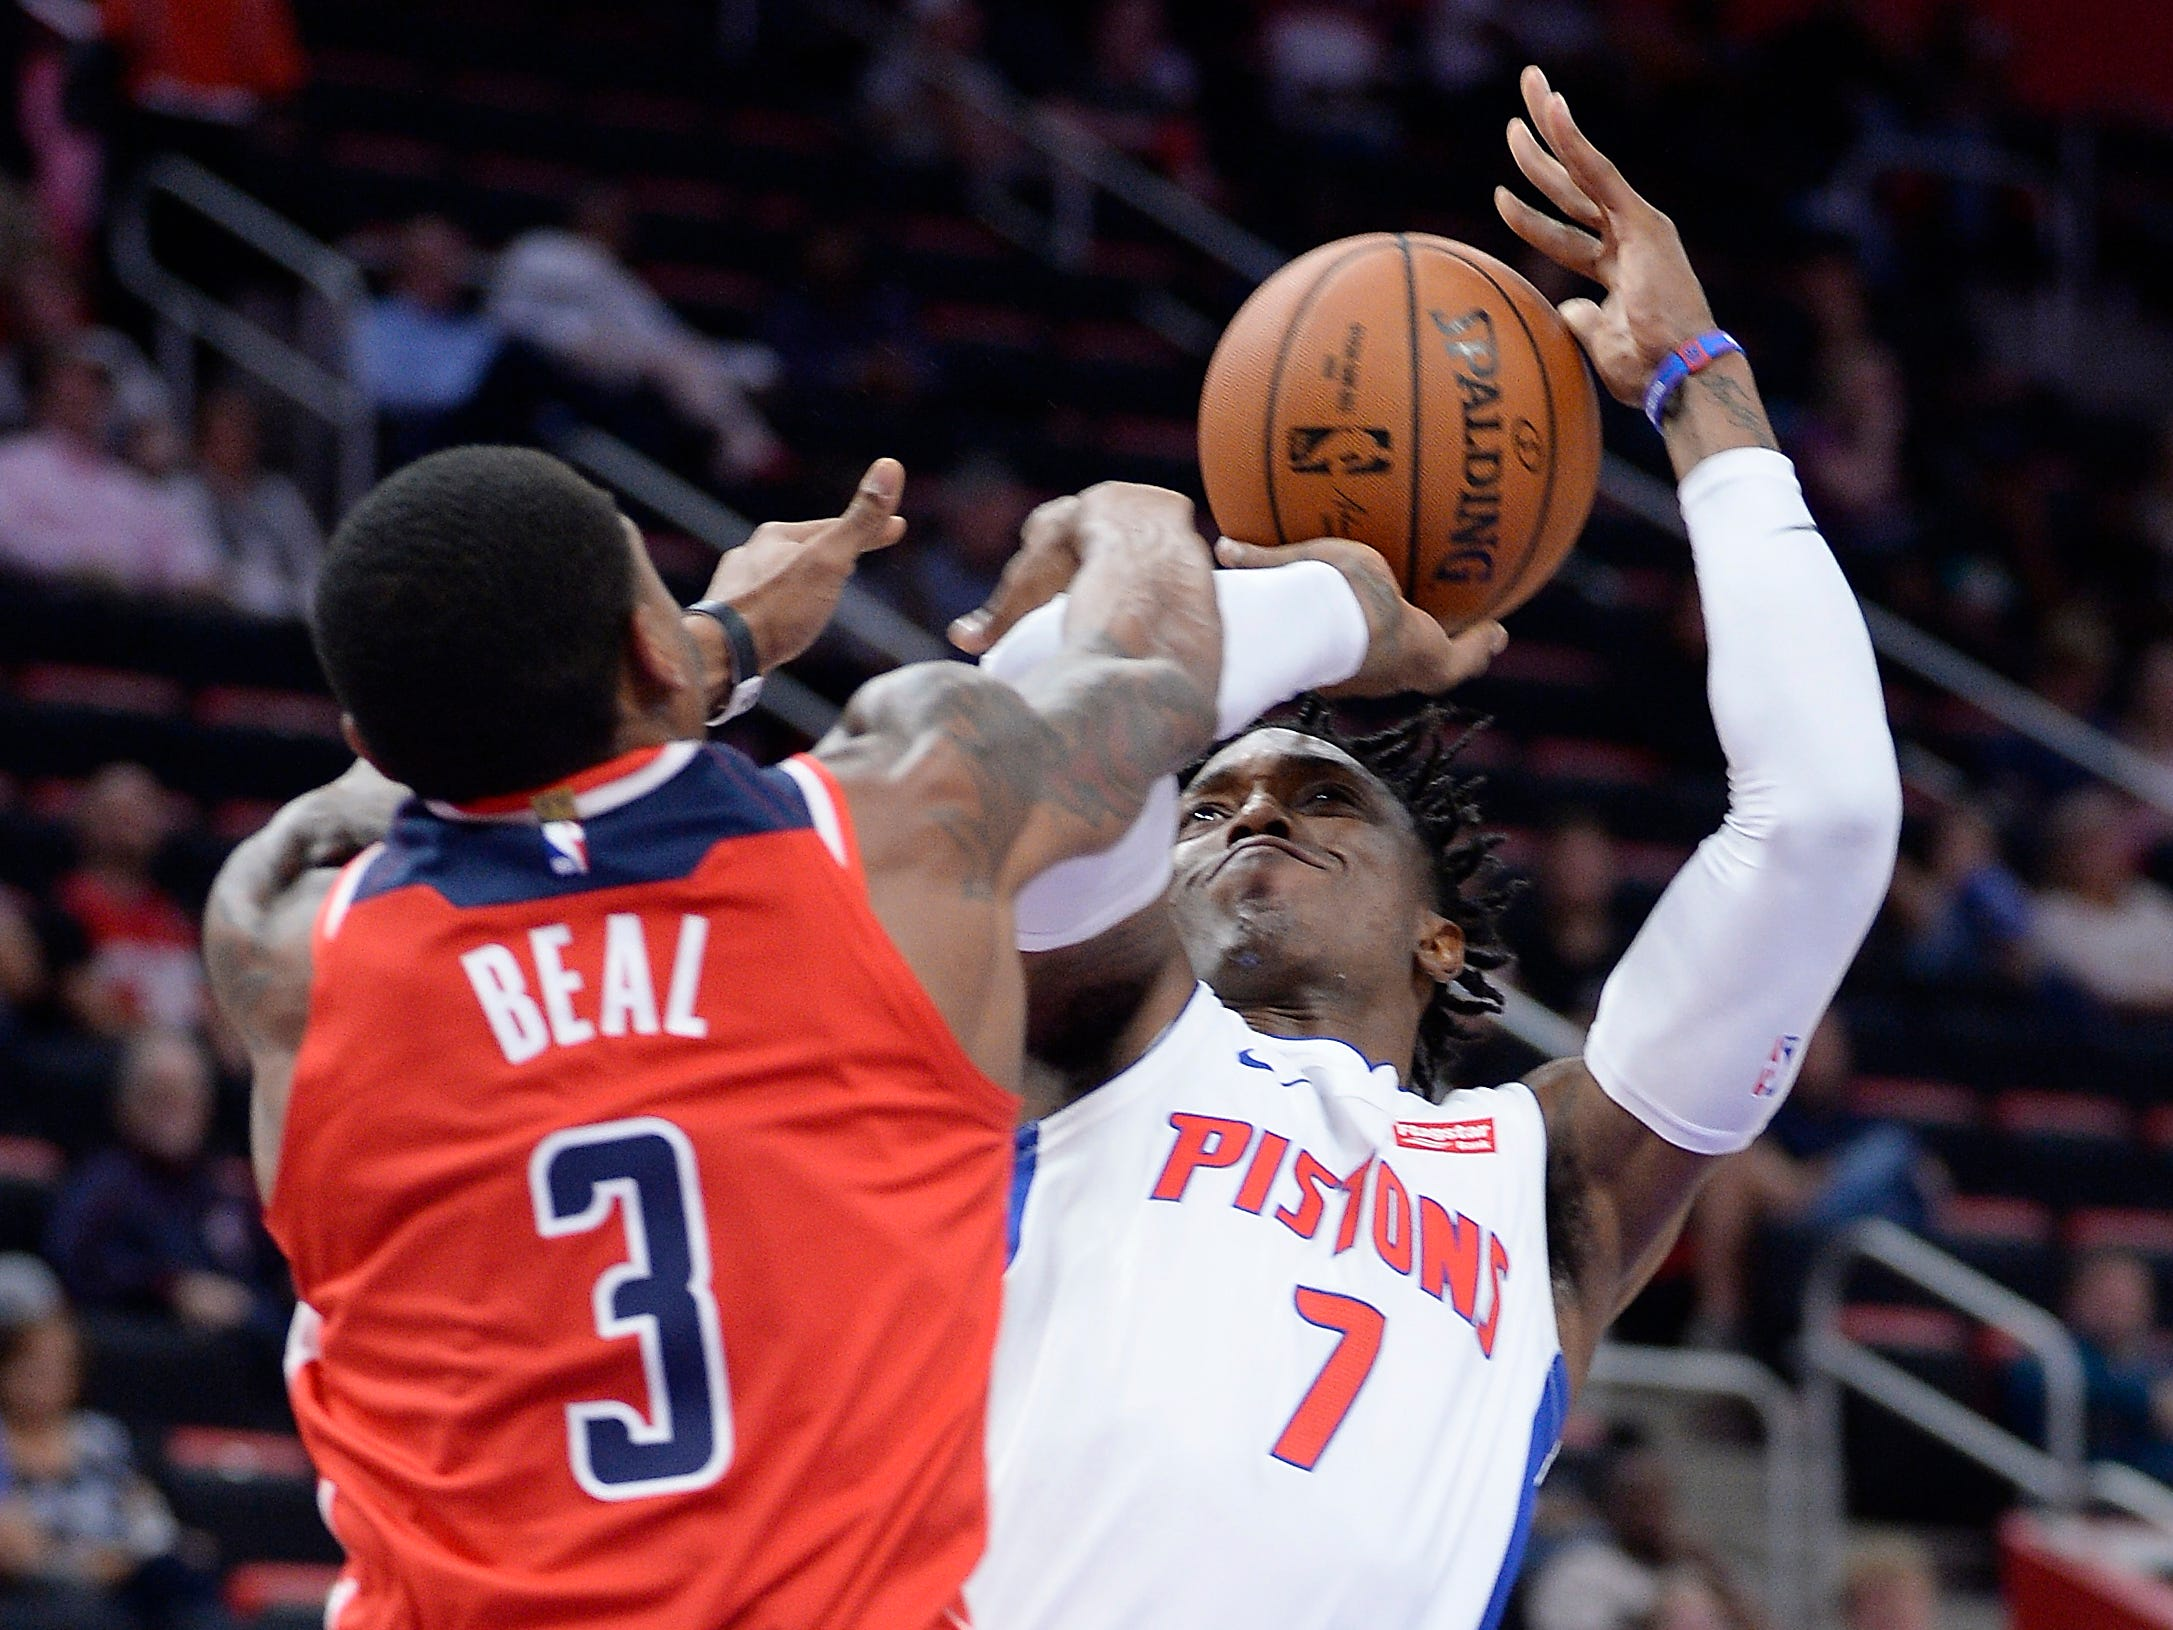 Pistons' Stanley Johnson is fouled by Wizards' Bradley Beal in the second quarter.